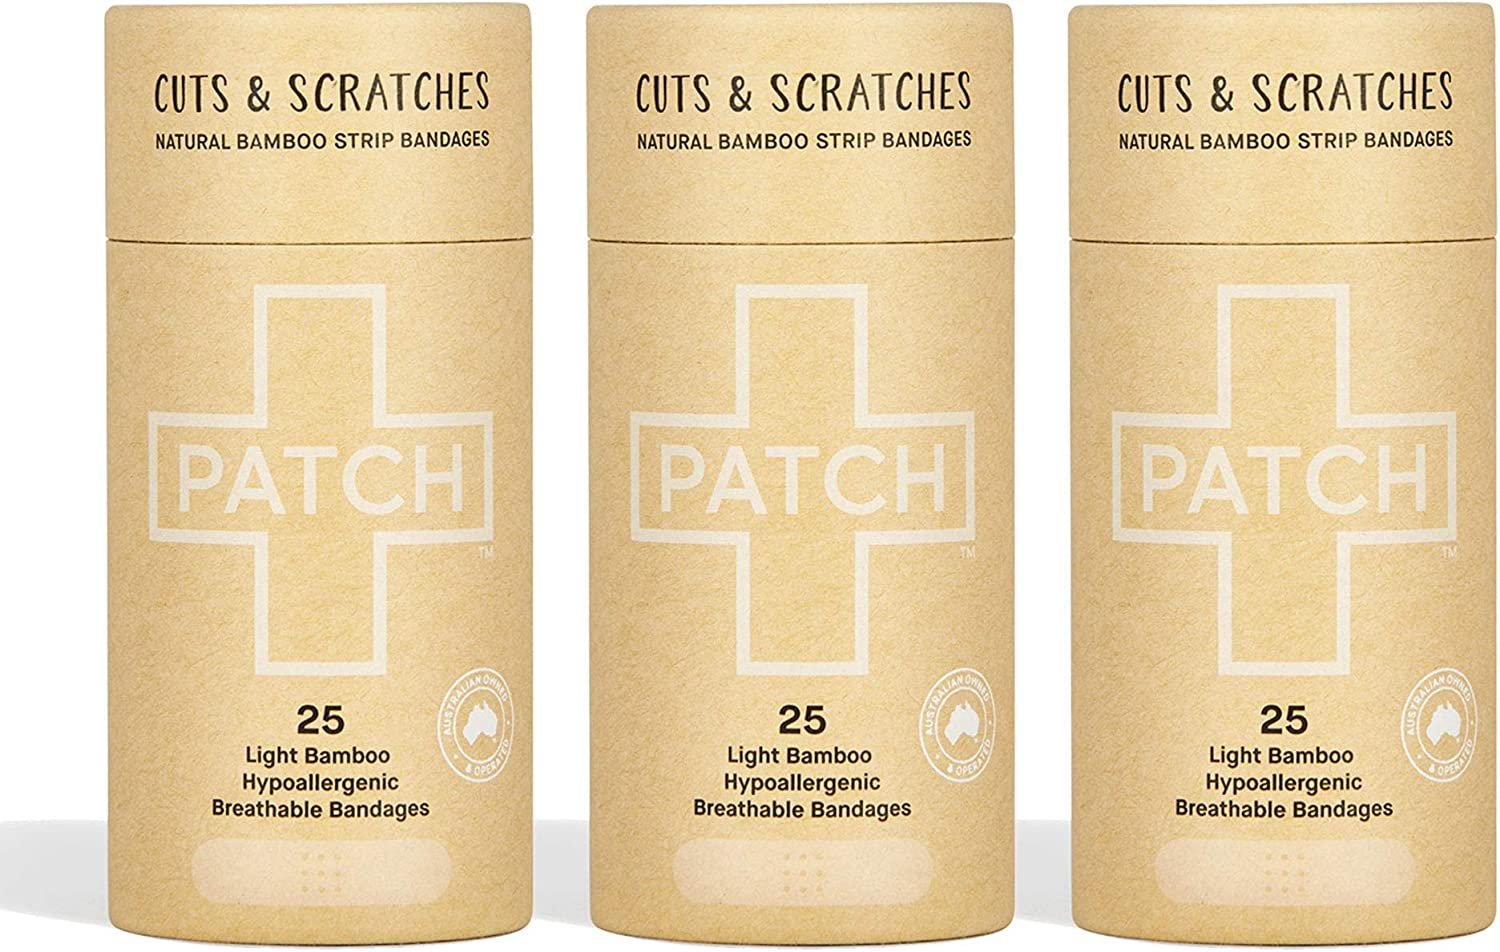 PATCH Eco-Friendly Bamboo Bandages for Cuts & Scratches, Hypoallergenic Wound Care for Sensitive Skin - Compostable & Biodegradable, Latex Free, Plastic Free, Zero Waste, Natural, 25ct (3pack)